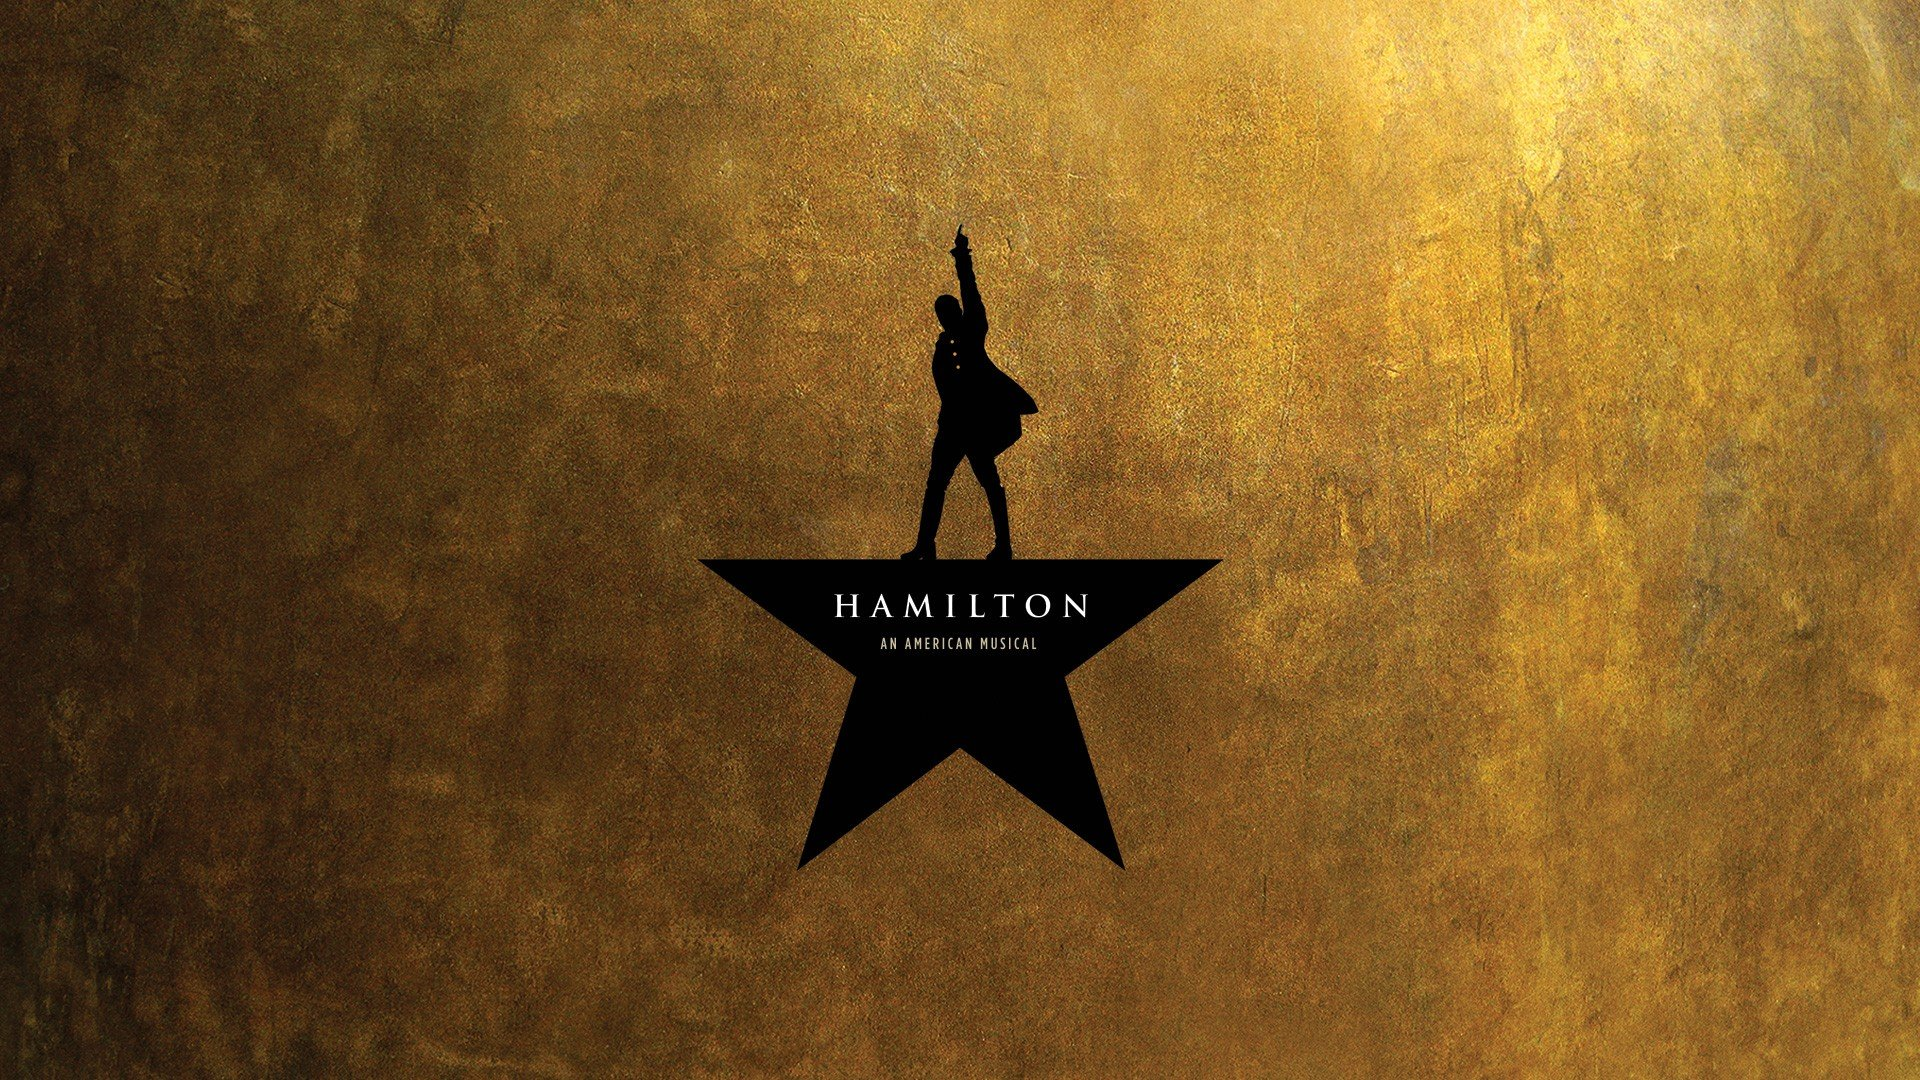 Cute Chromebook Wallpapers Hamilton An American Musical Broadway History Music